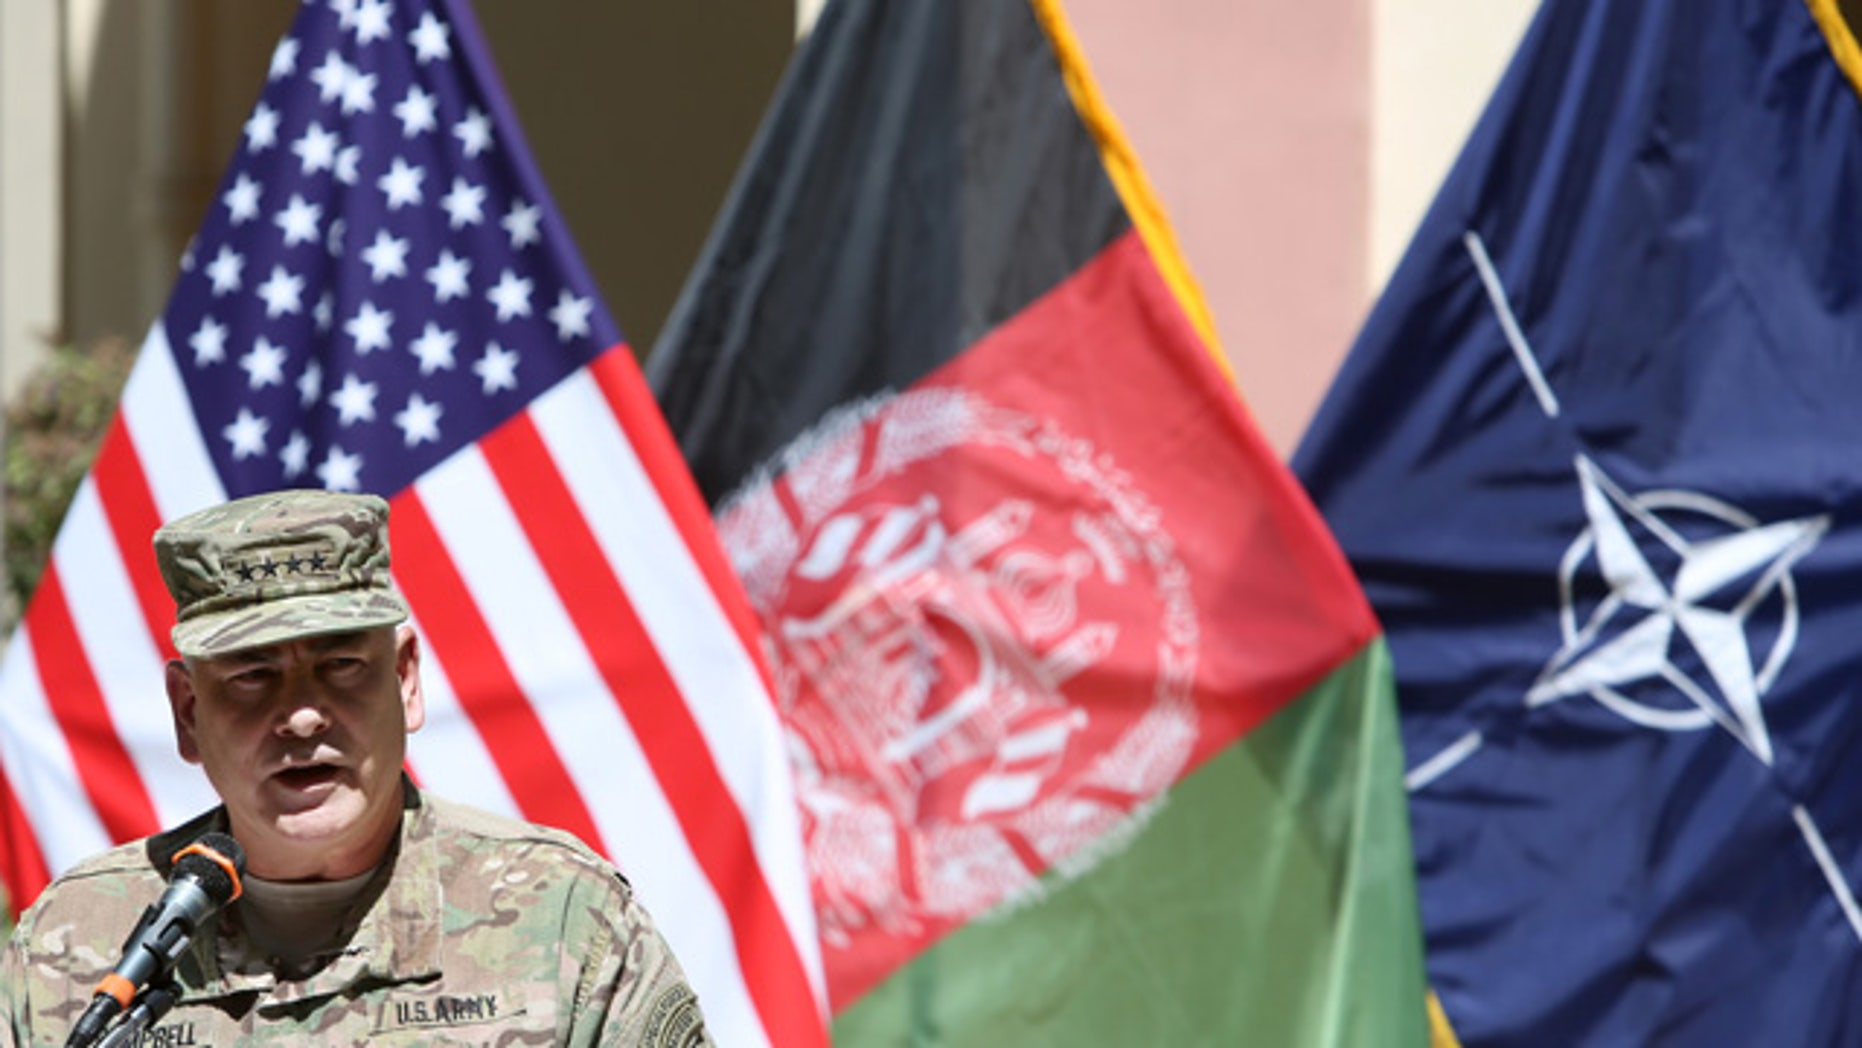 Sept. 11, 2015: Commander of the International Security Assistance Force (ISAF), Gen. John Campbell, speaks during a memorial ceremony on the fourteenth anniversary of the 9-11 terrorist attacks on the United States at the headquarters of the International Security Assistance Force, in Kabul, Afghanistan. (AP Photo/Rahmat Gul)